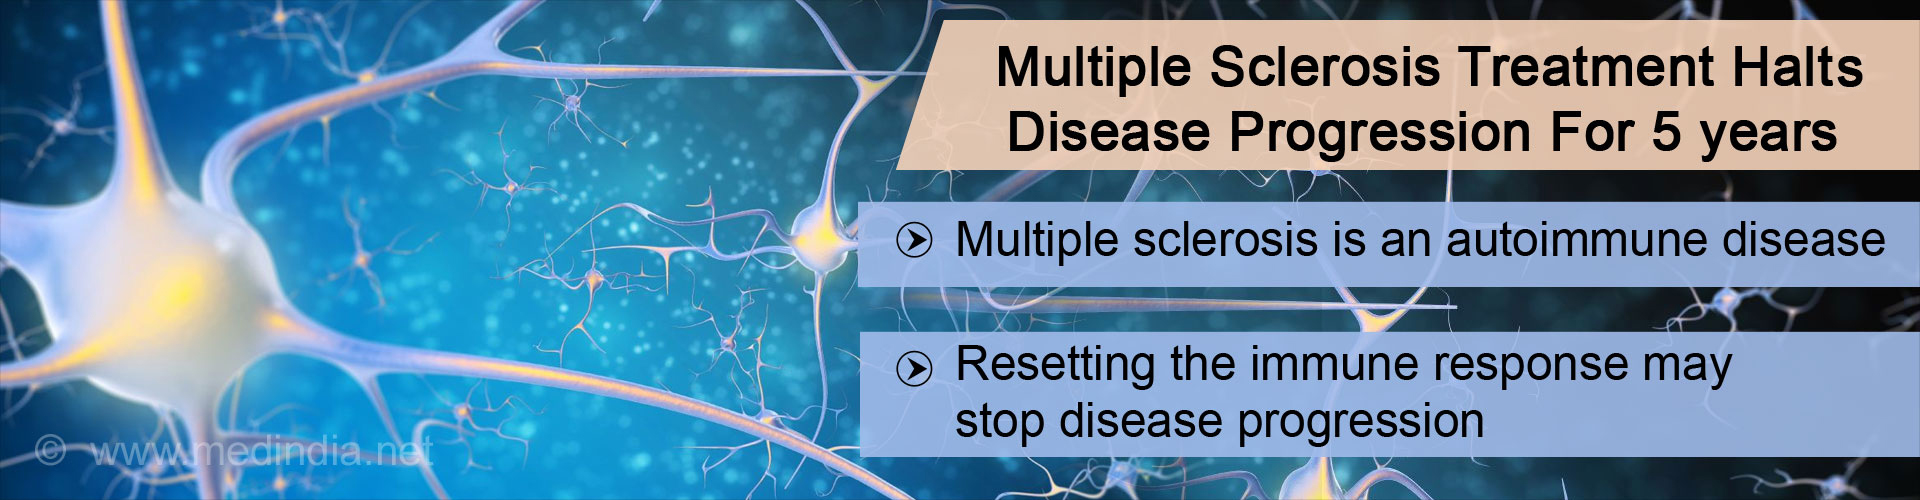 Multiple sclerosis treatment halt disease progression for 5 years